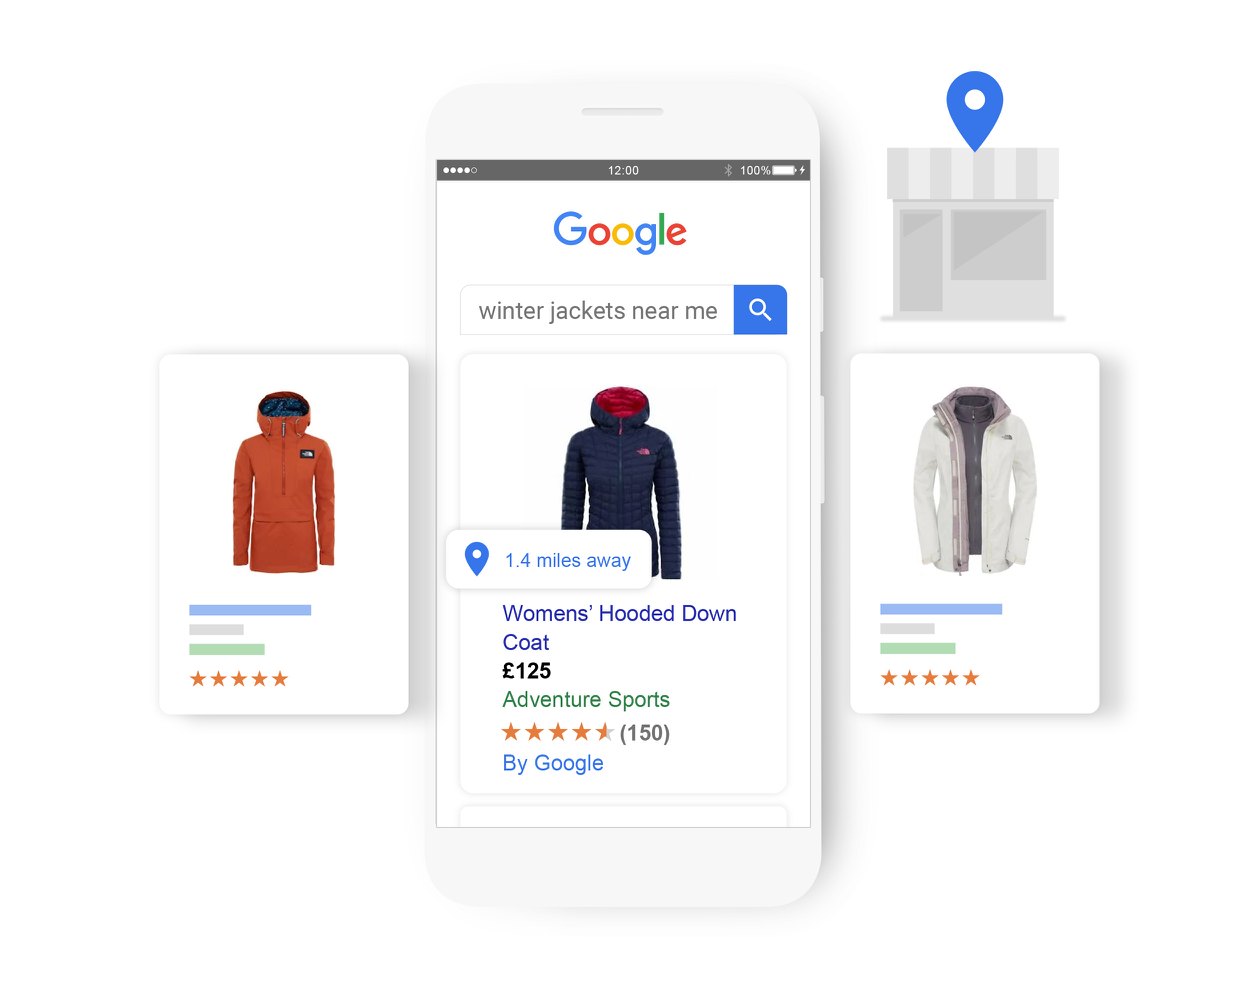 A search for 'winter jackets near me' brings up relevant local inventory ads